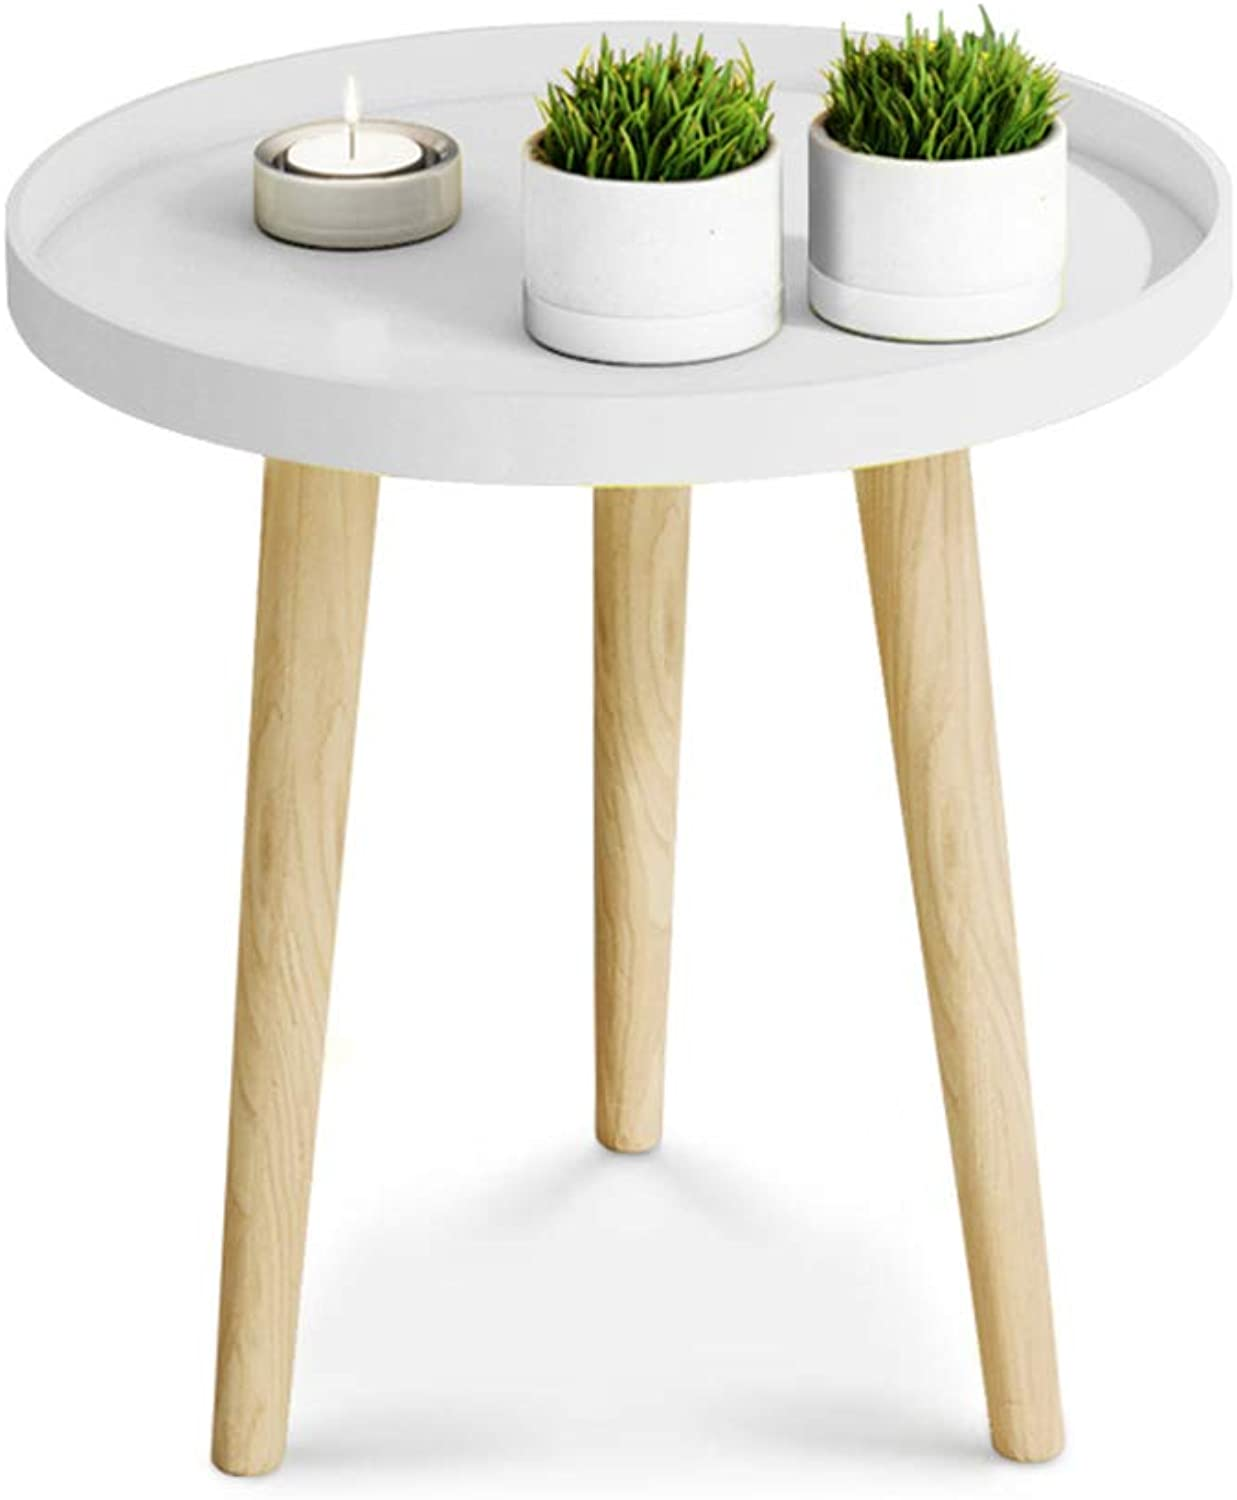 Small Round Table Nordic Bedroom Bedside Table Living Room Side Table Corner Table Wooden Coffee Table Decoration Sofa Table Telephone Table,White,50CM